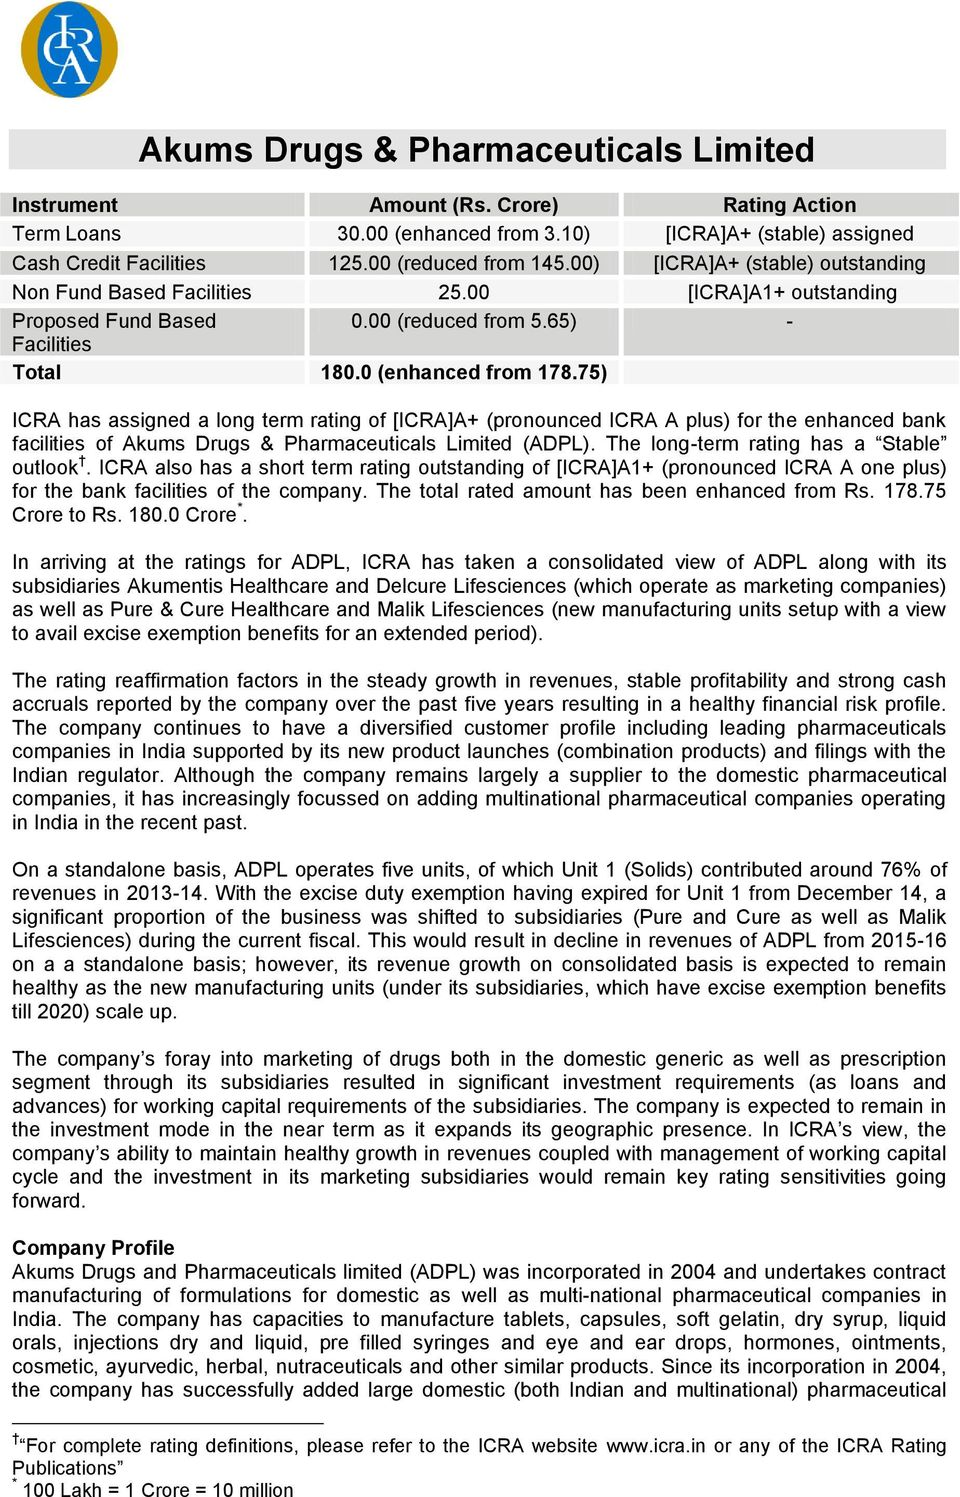 75) ICRA has assigned a long term rating of [ICRA]A+ (pronounced ICRA A plus) for the enhanced bank facilities of Akums Drugs & Pharmaceuticals Limited (ADPL).